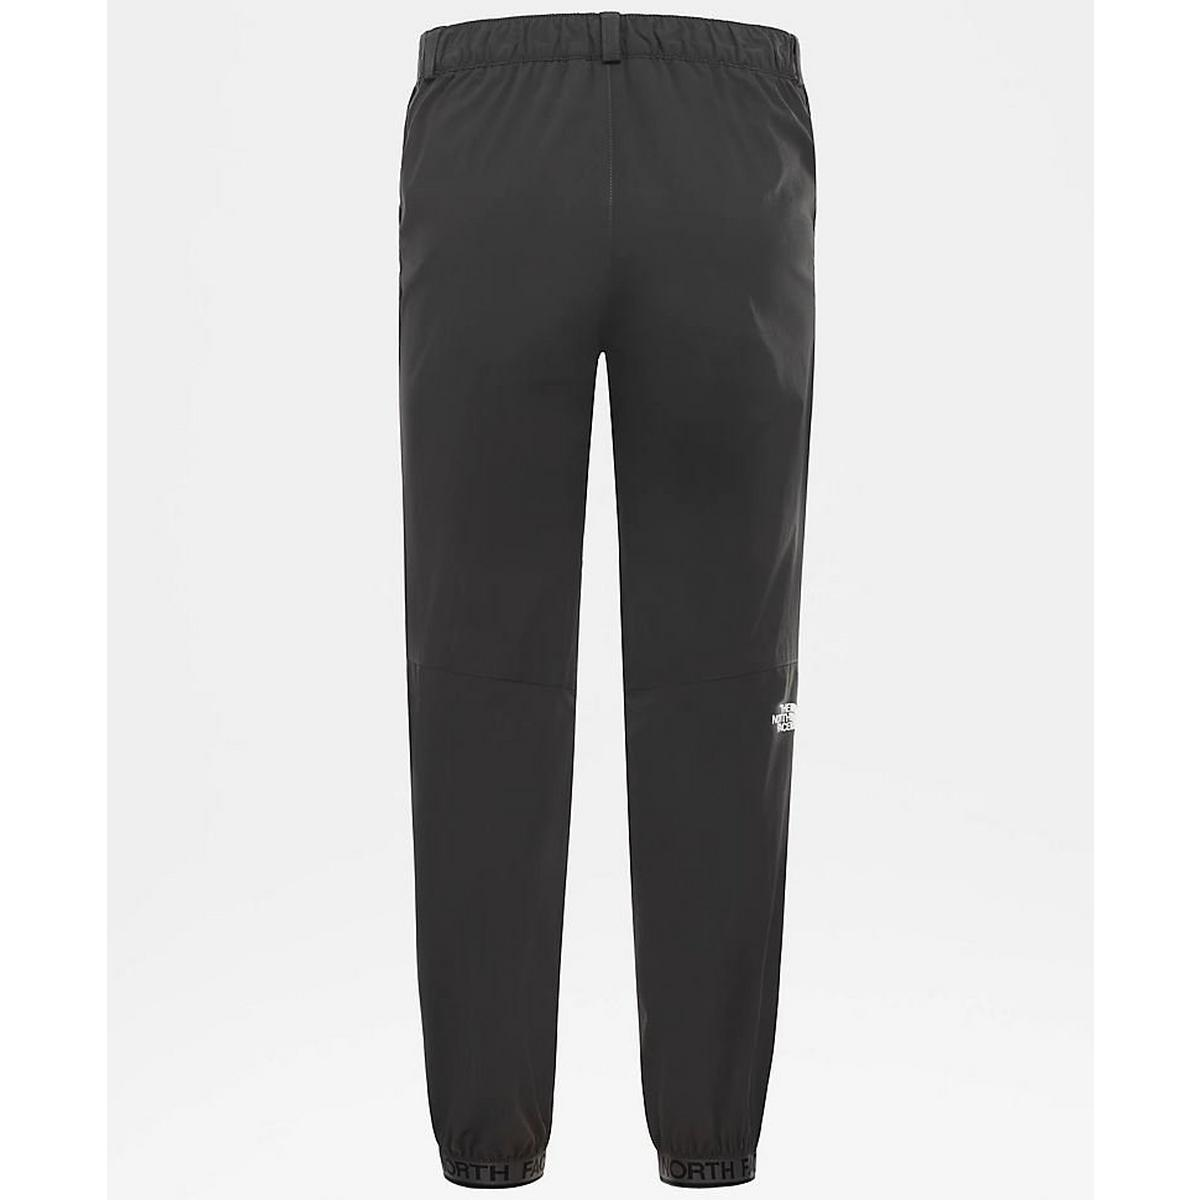 The North Face Kids' The North Face B Exploration Pant 2.0 - Grey